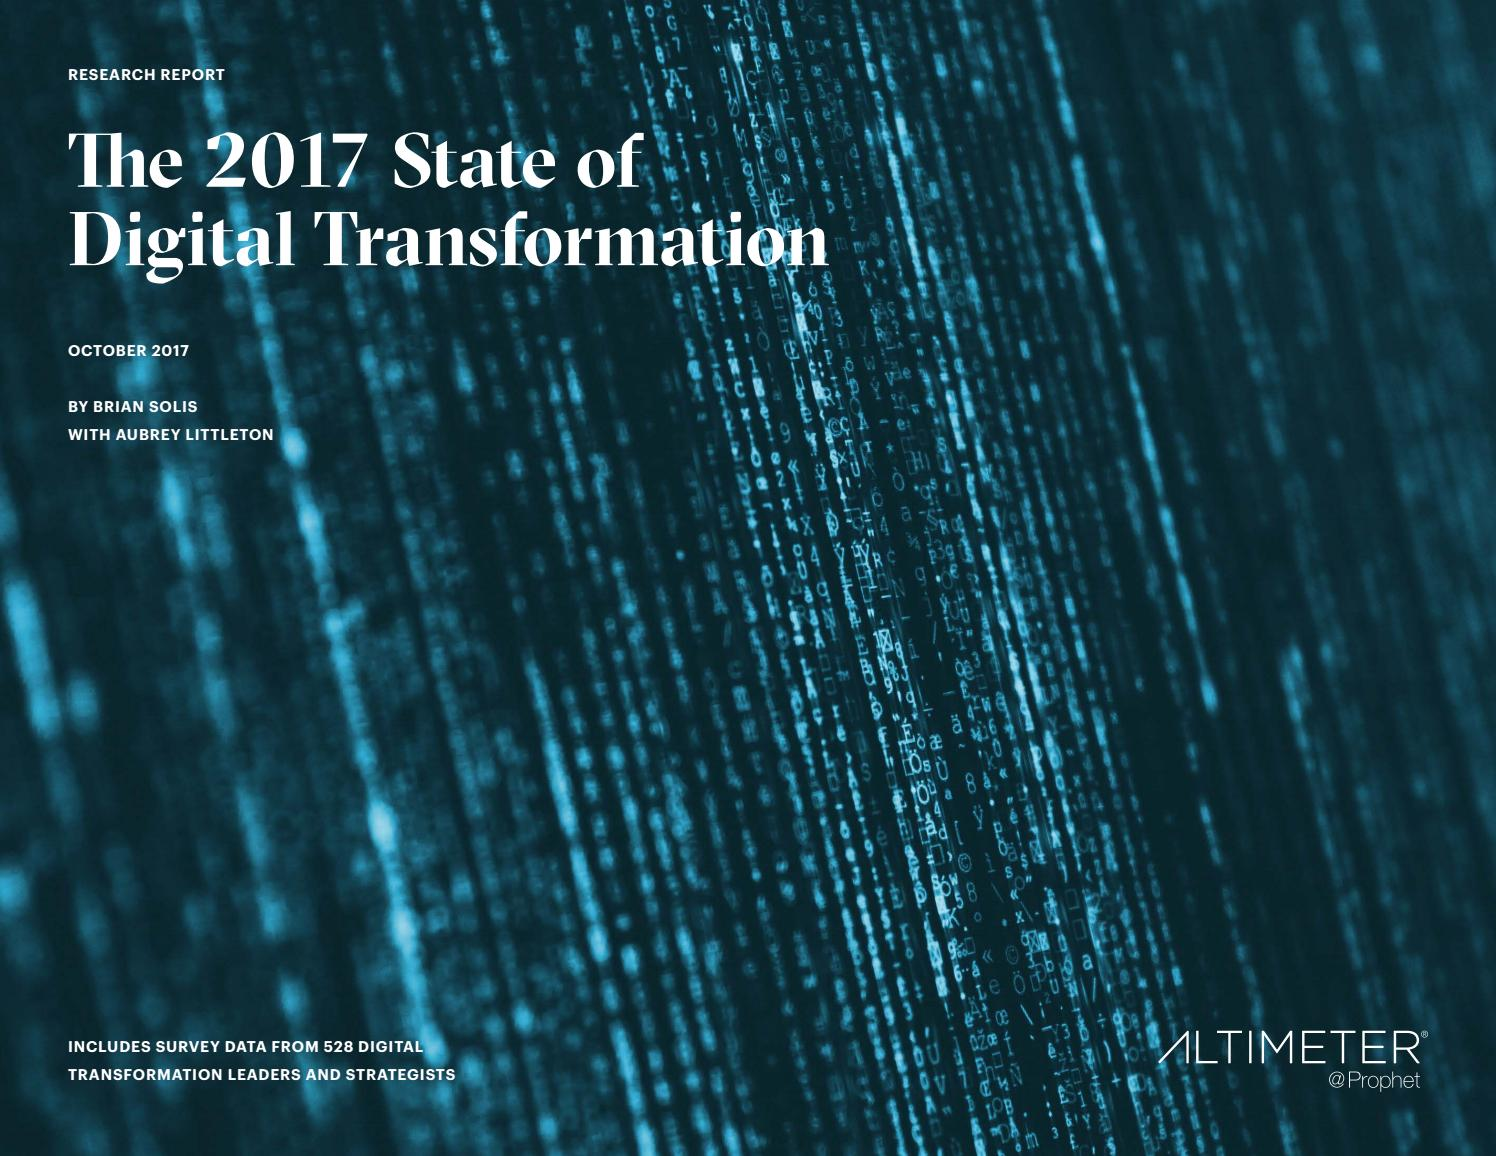 the 2017 state of digital transformation by brian solis by